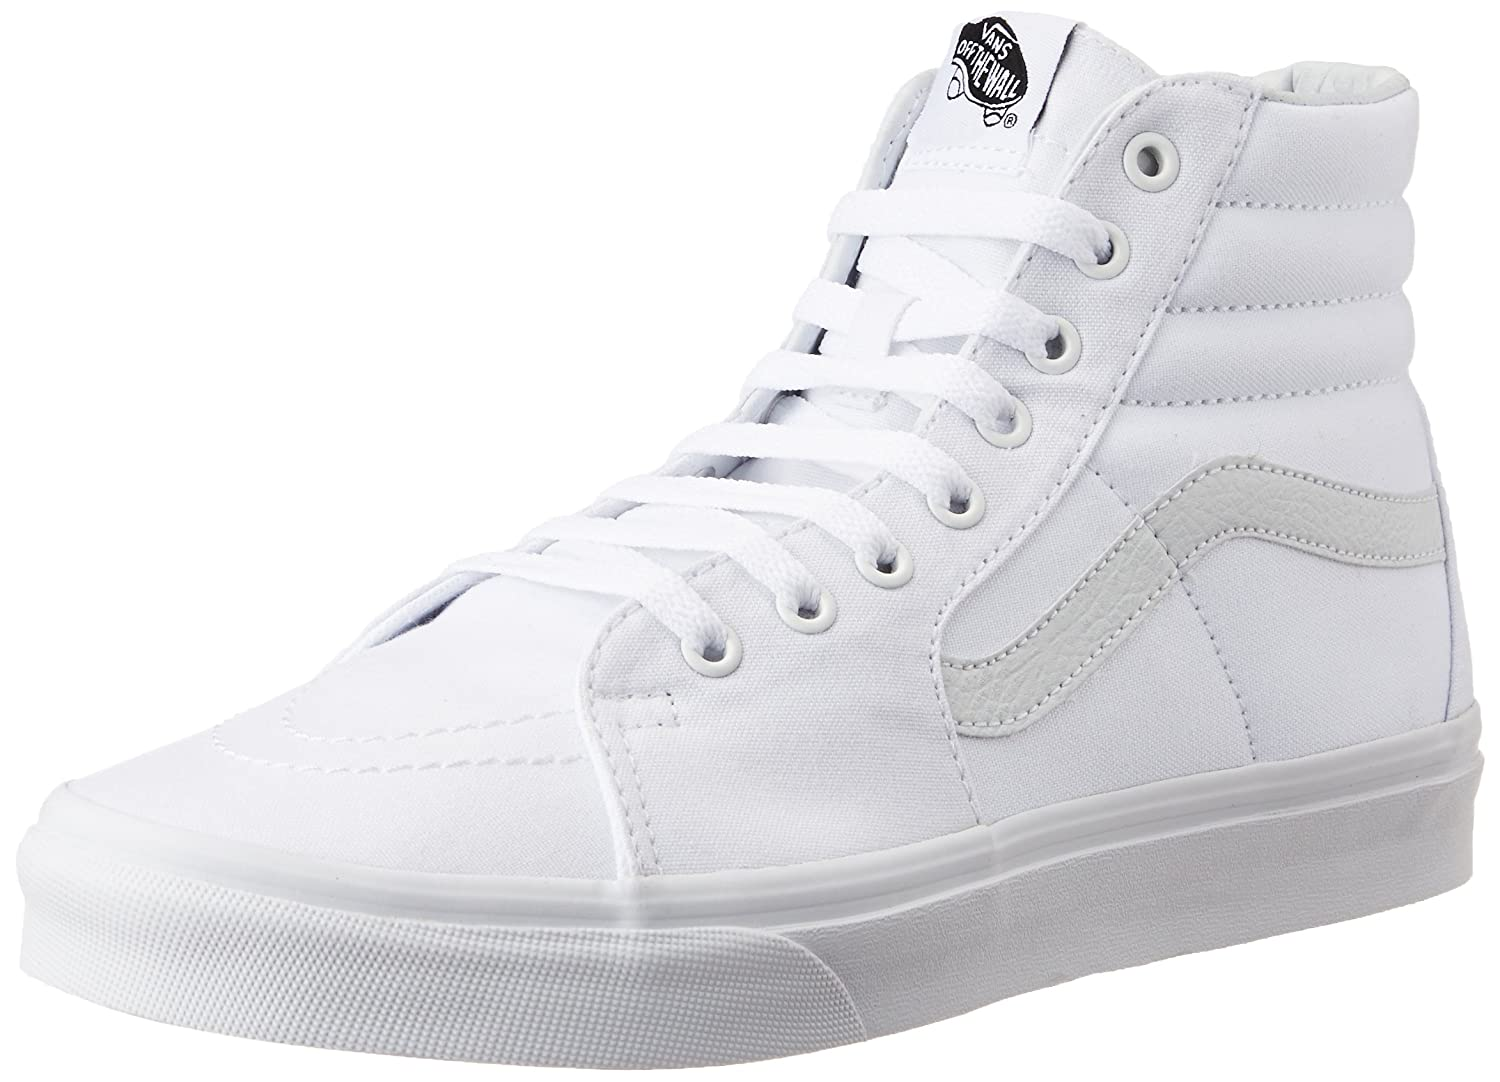 961285a42a Vans Unisex Sk8-Hi Sneakers  Buy Online at Low Prices in India - Amazon.in